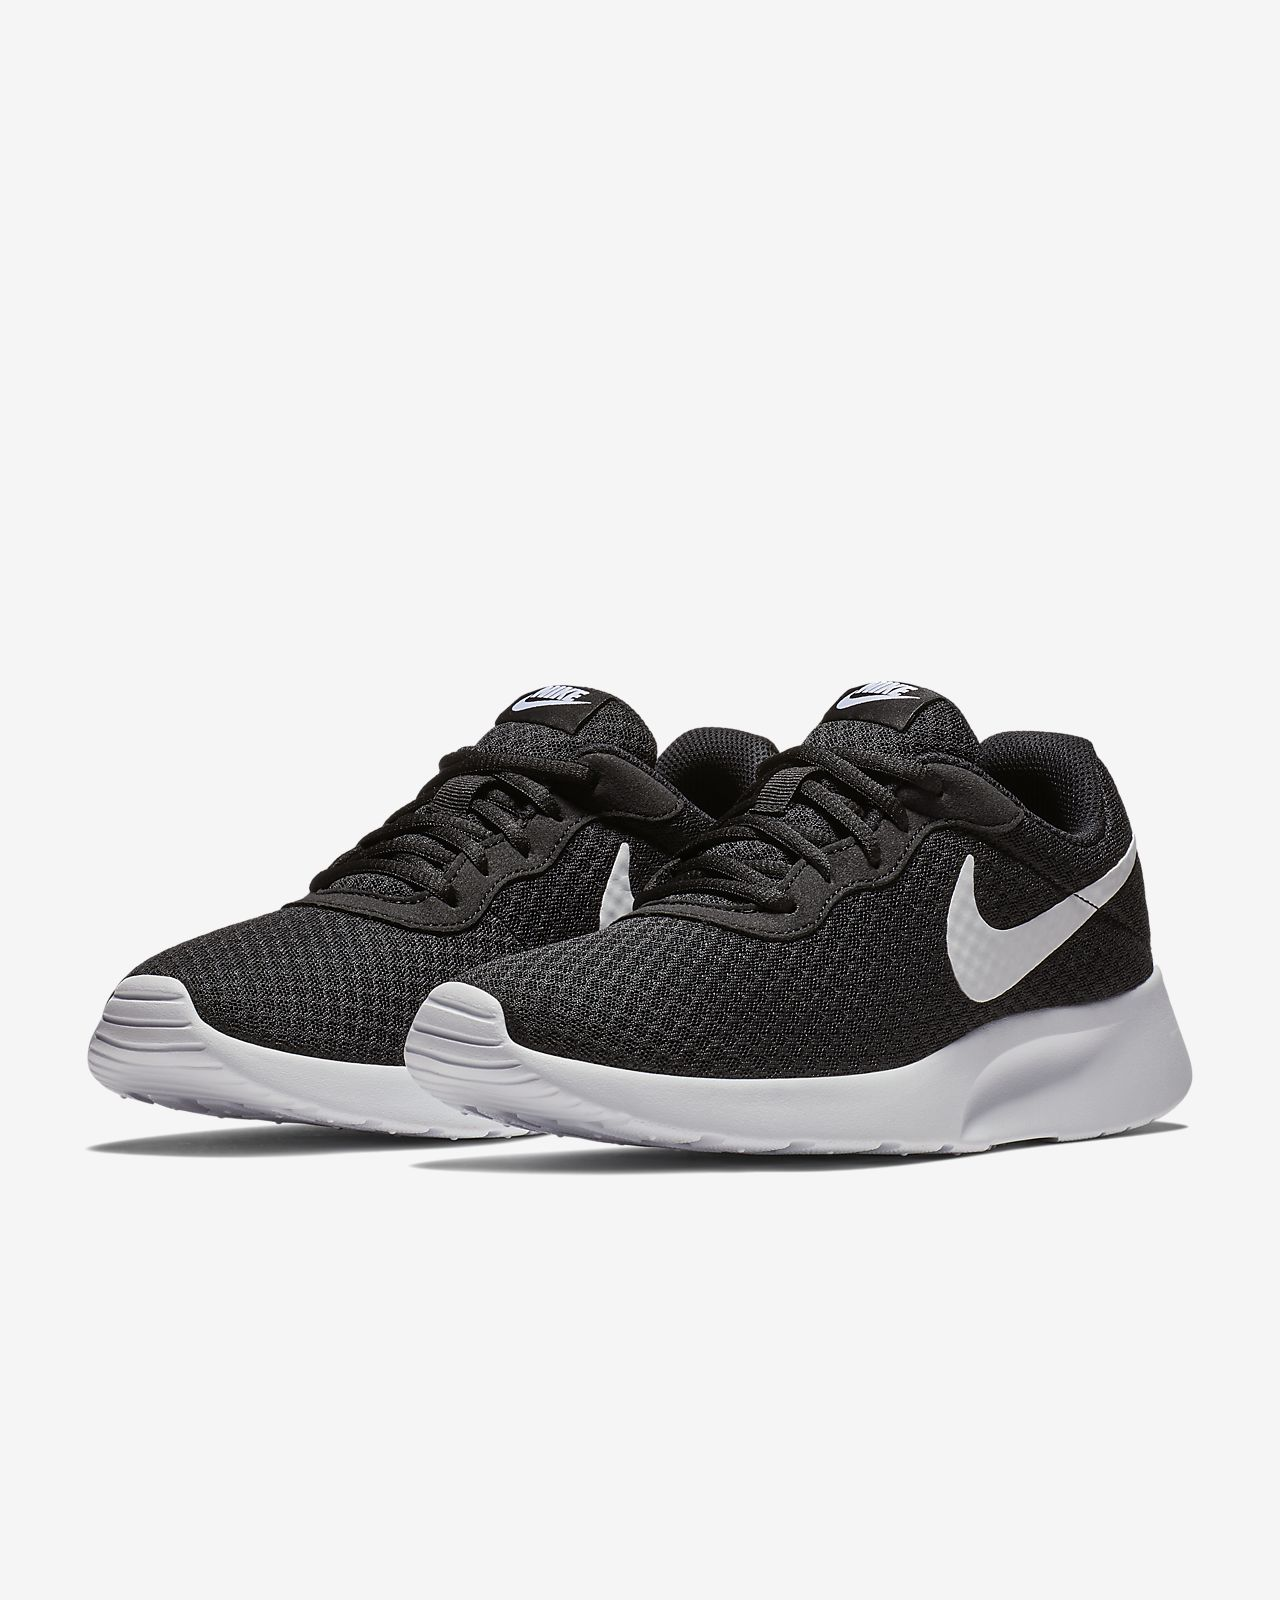 Low Resolution Nike Tanjun Women s Shoe Nike Tanjun Women s Shoe dbc2fd691